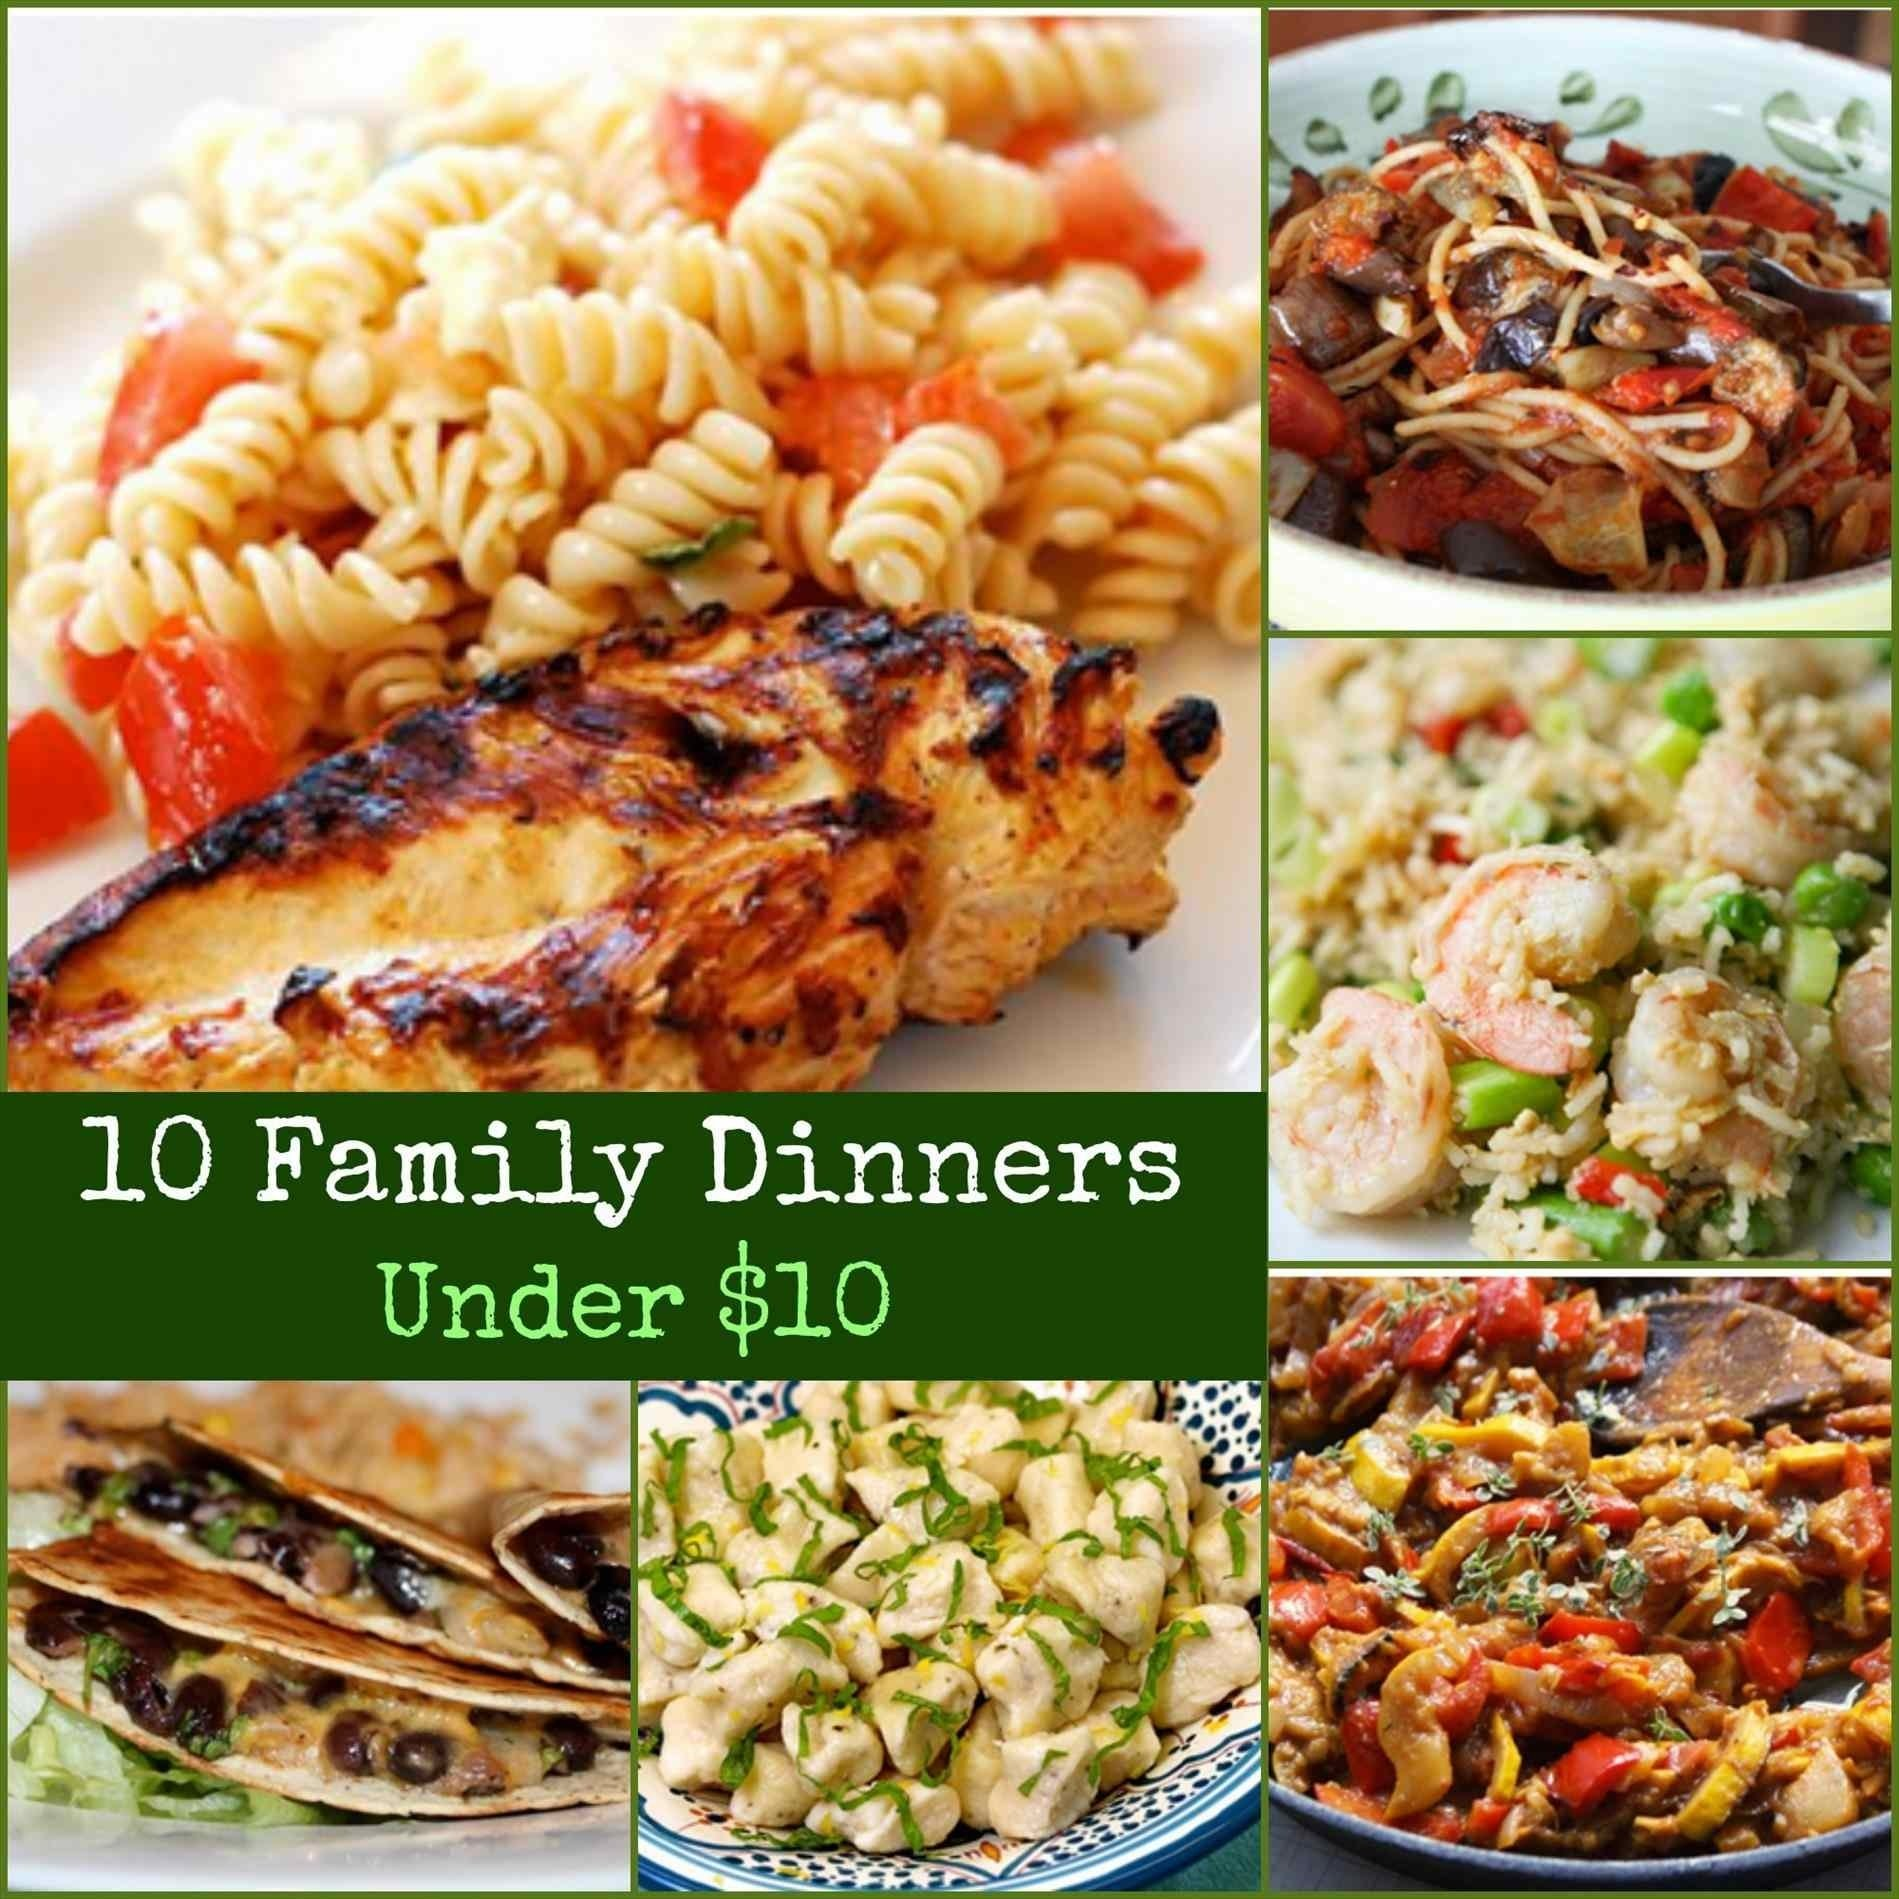 10 Stylish Quick Easy Dinner Ideas For Families quick and easy dinner recipes for family siudy 4 2020